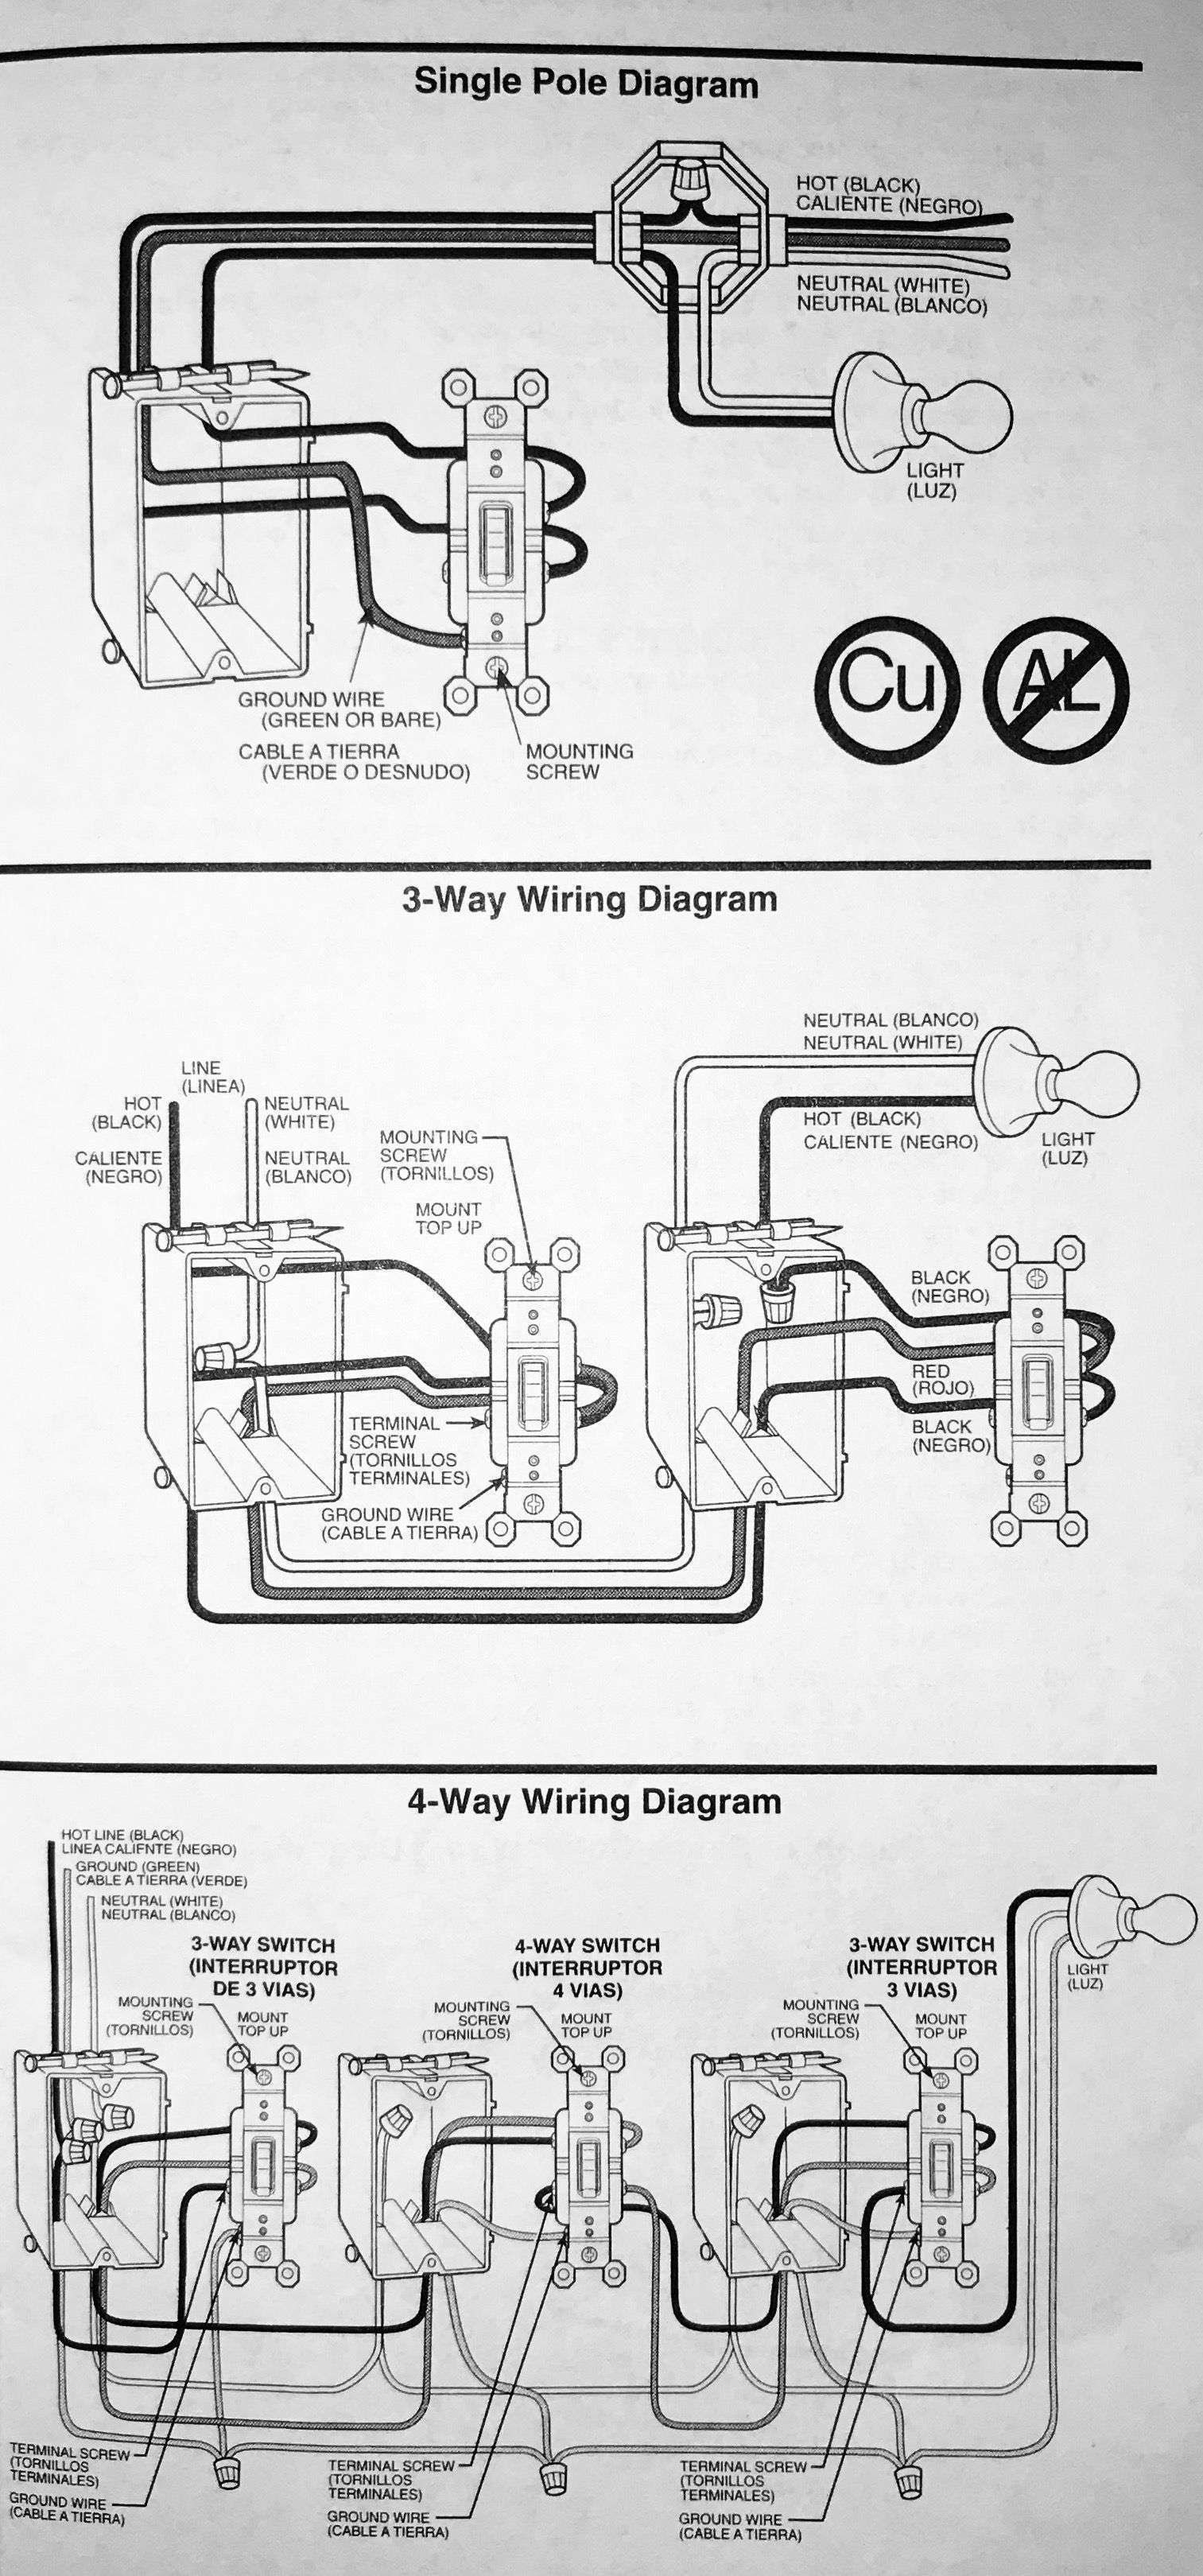 12 Volt Double Pole Single Switch Wiring Diagram